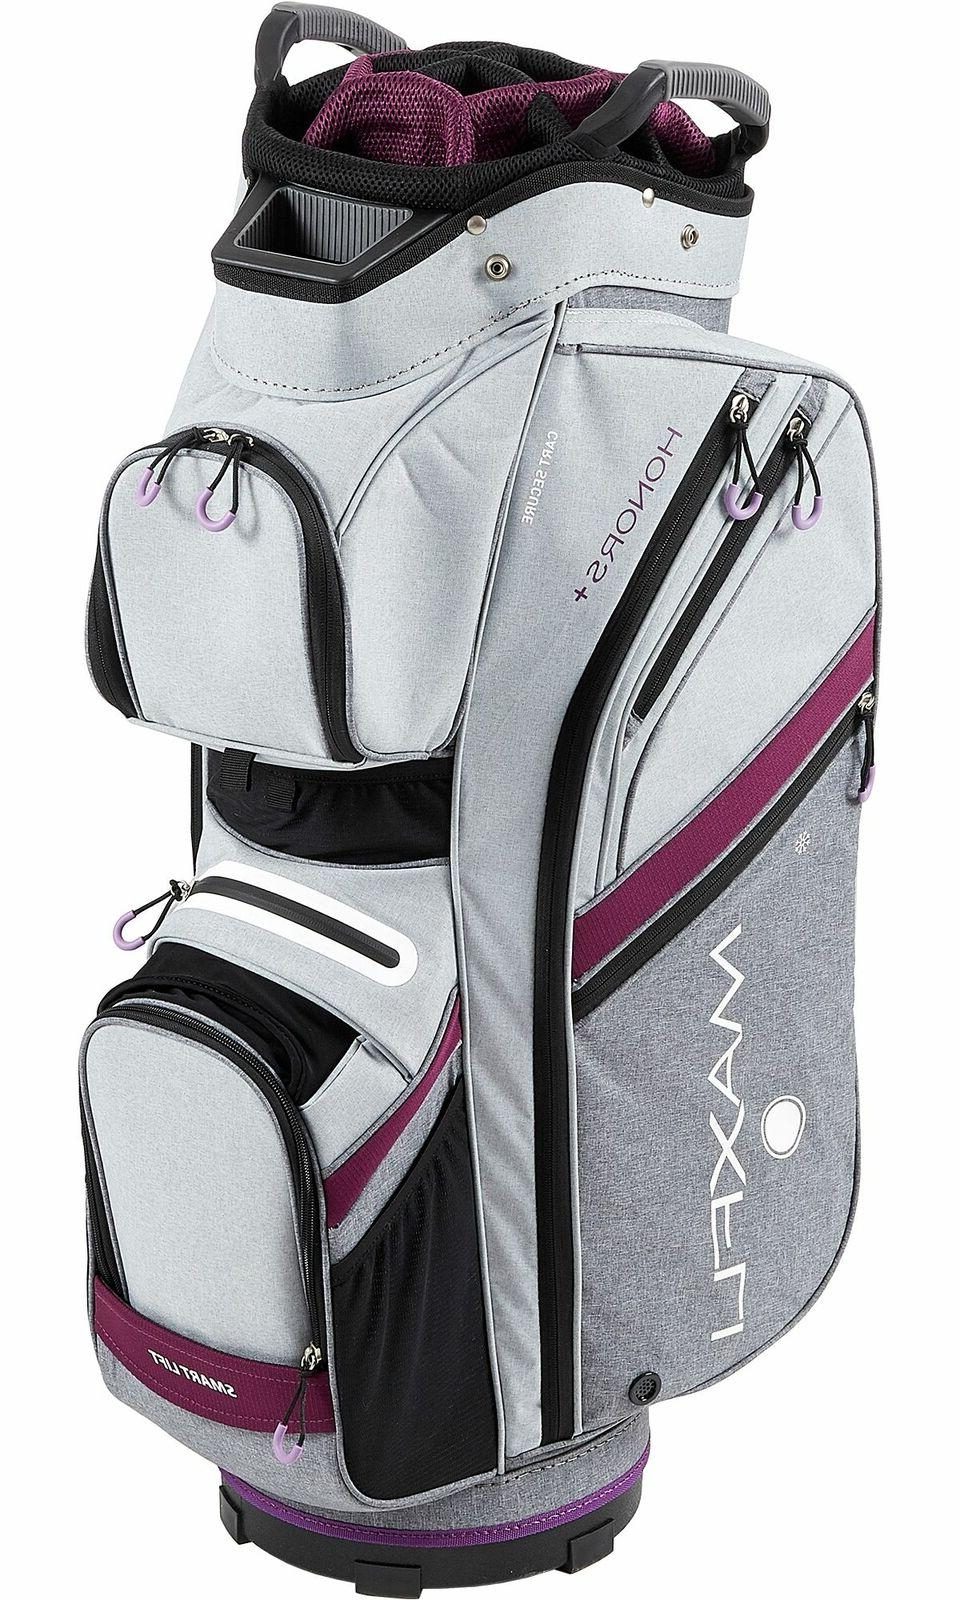 New Maxfli Golf Cart Bag 2019 Plus Gray/Purple